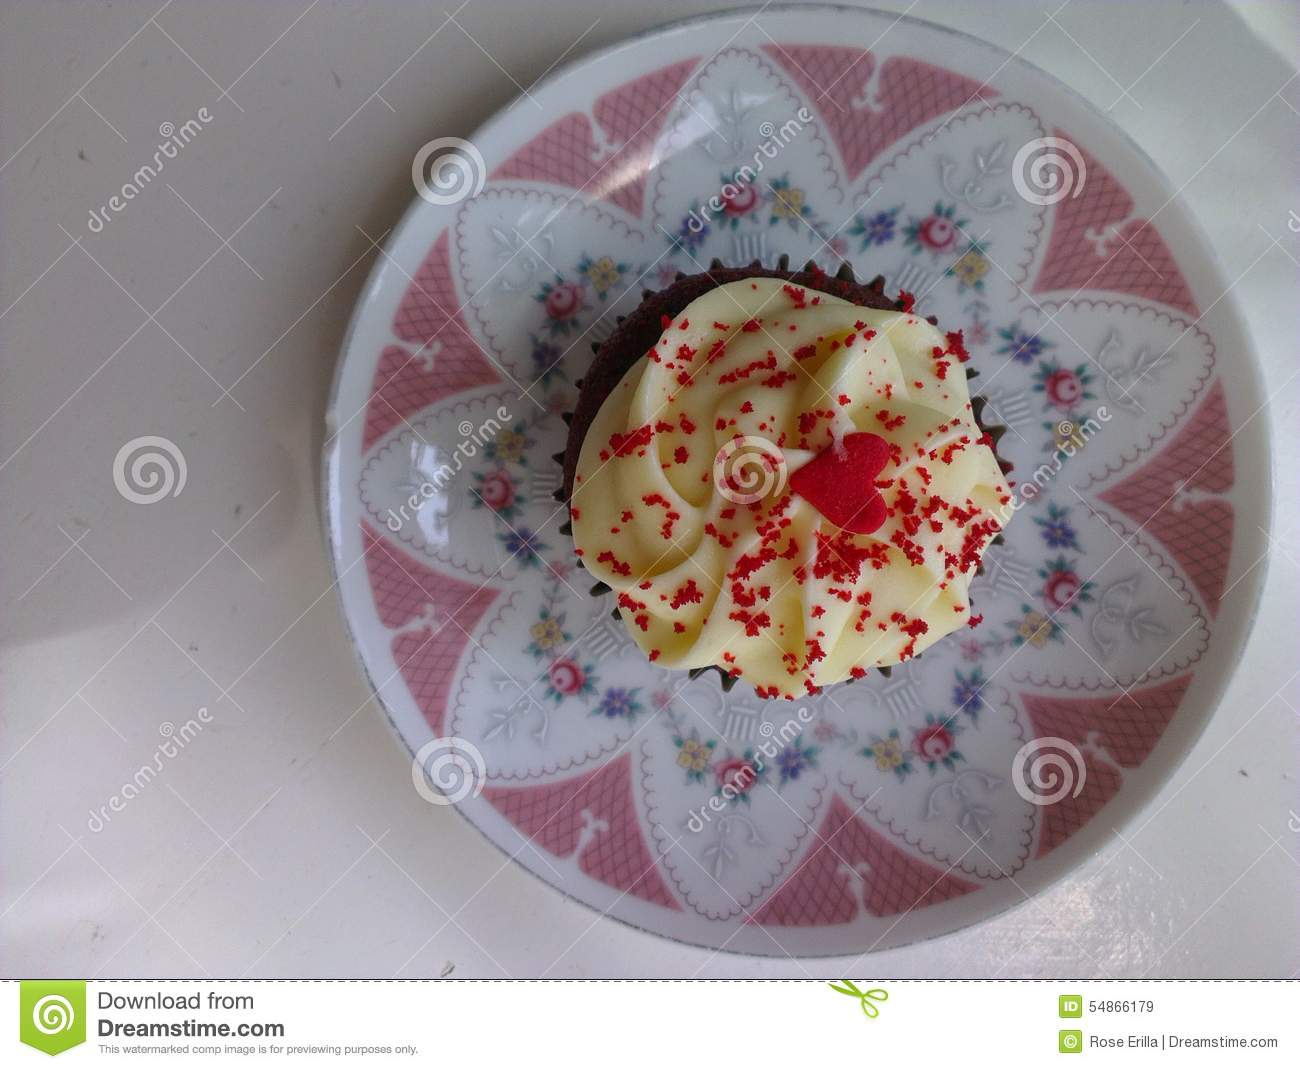 ... sweet dessert frosting with palable heart design and red sprinkles